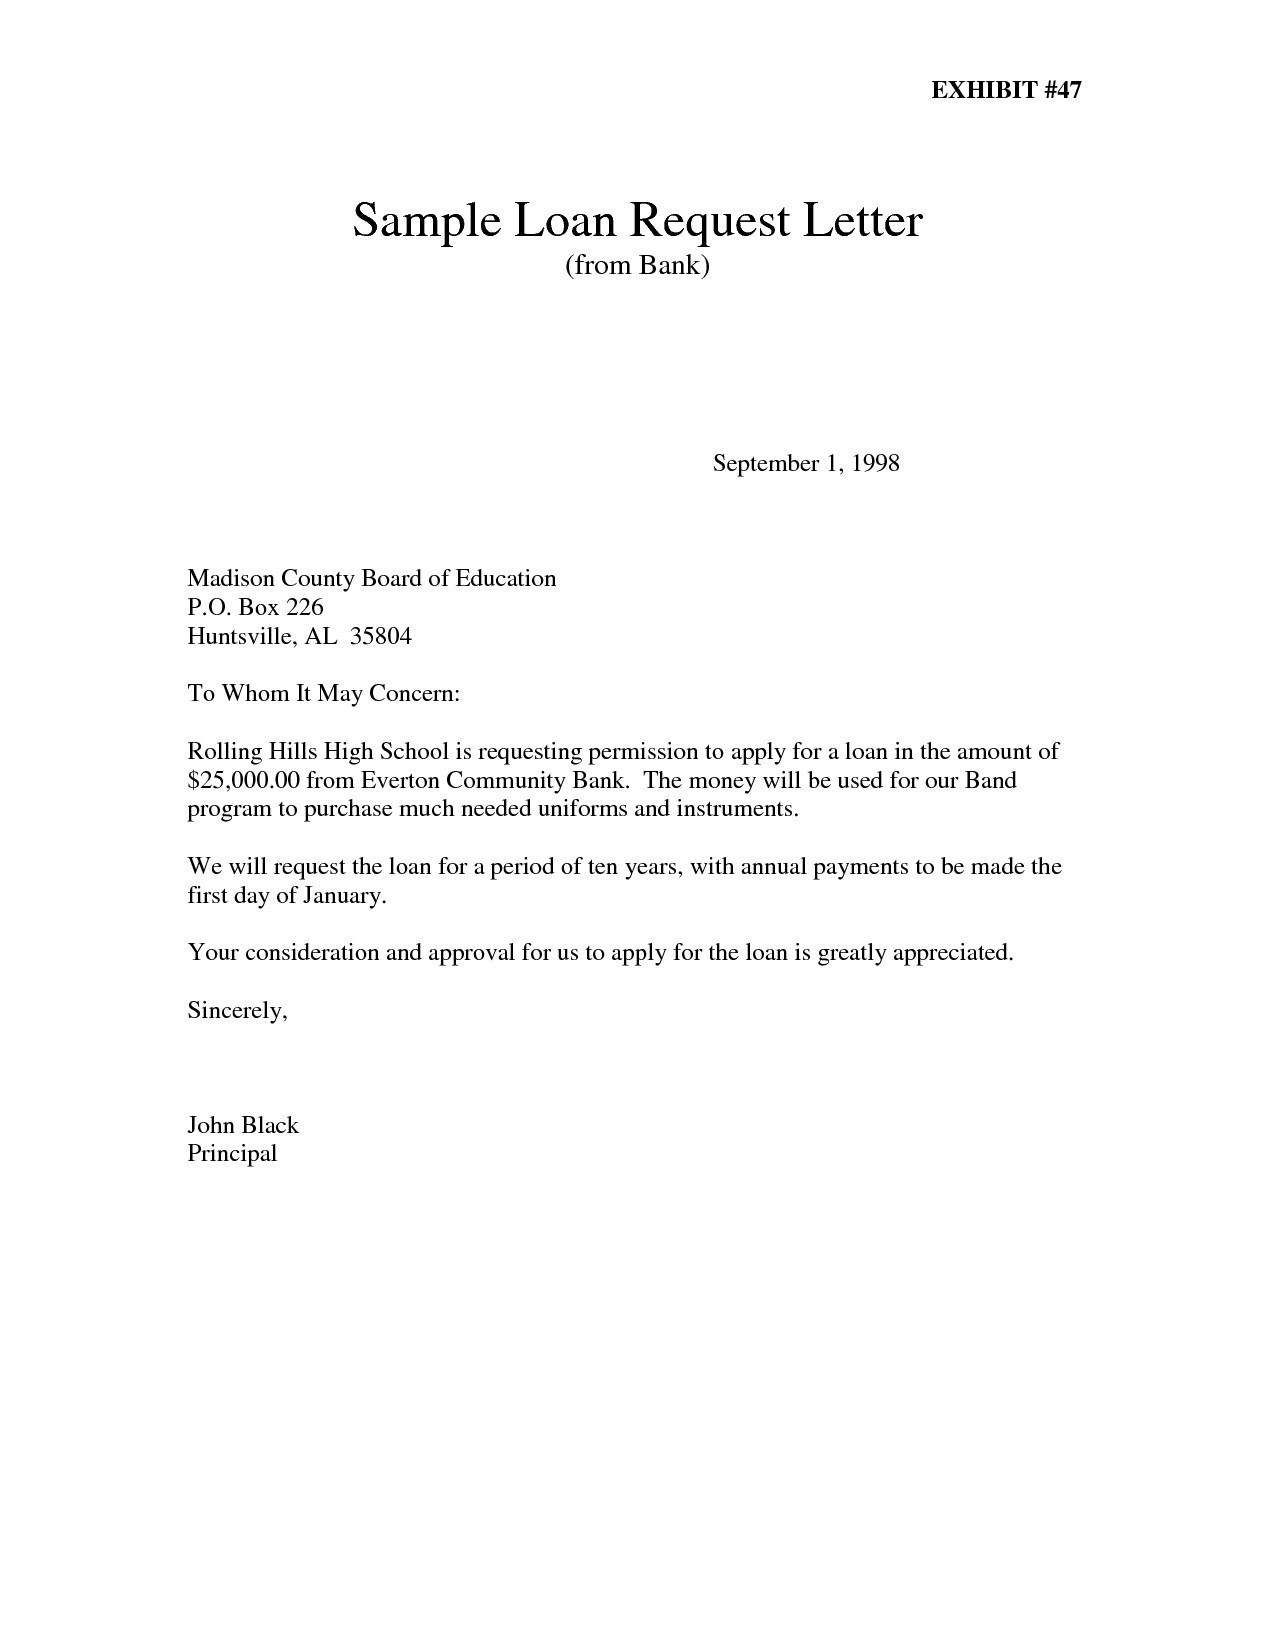 Personal Loan Repayment Letter Template Examples